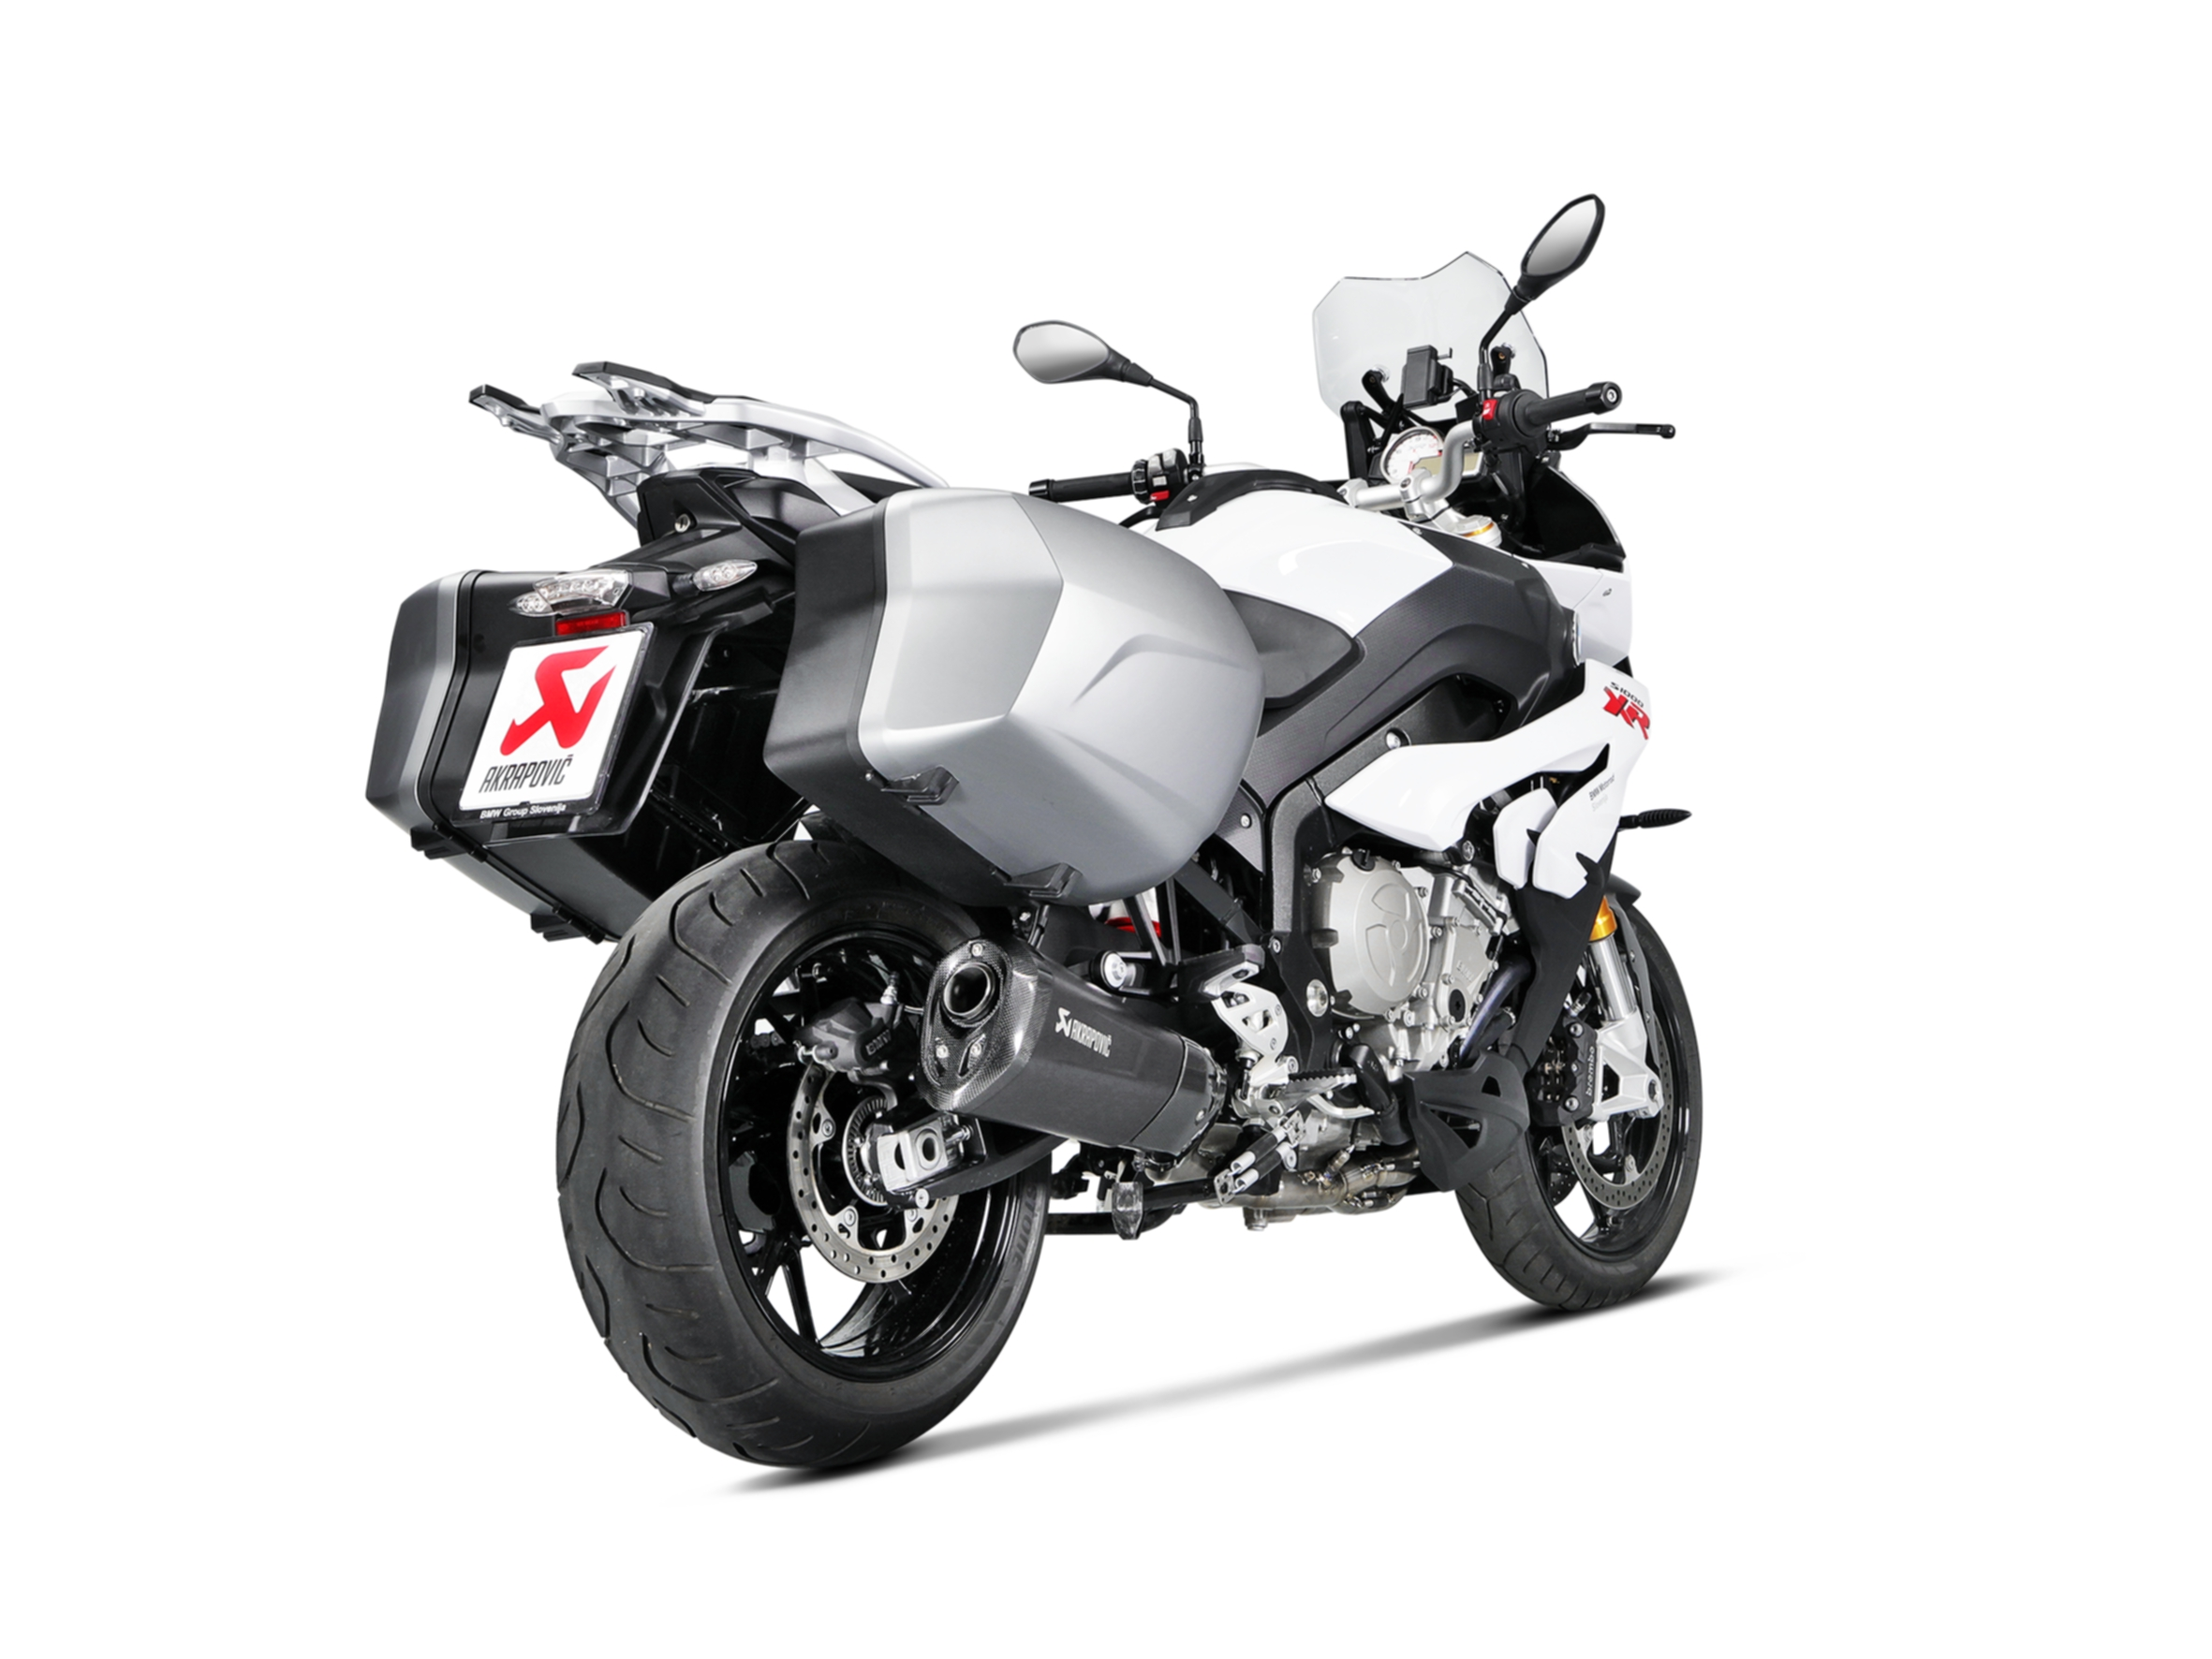 Bmw S 1000 Xr 2017 Bmw S 1000 Xr First Look Cycle News Bmw S 1000